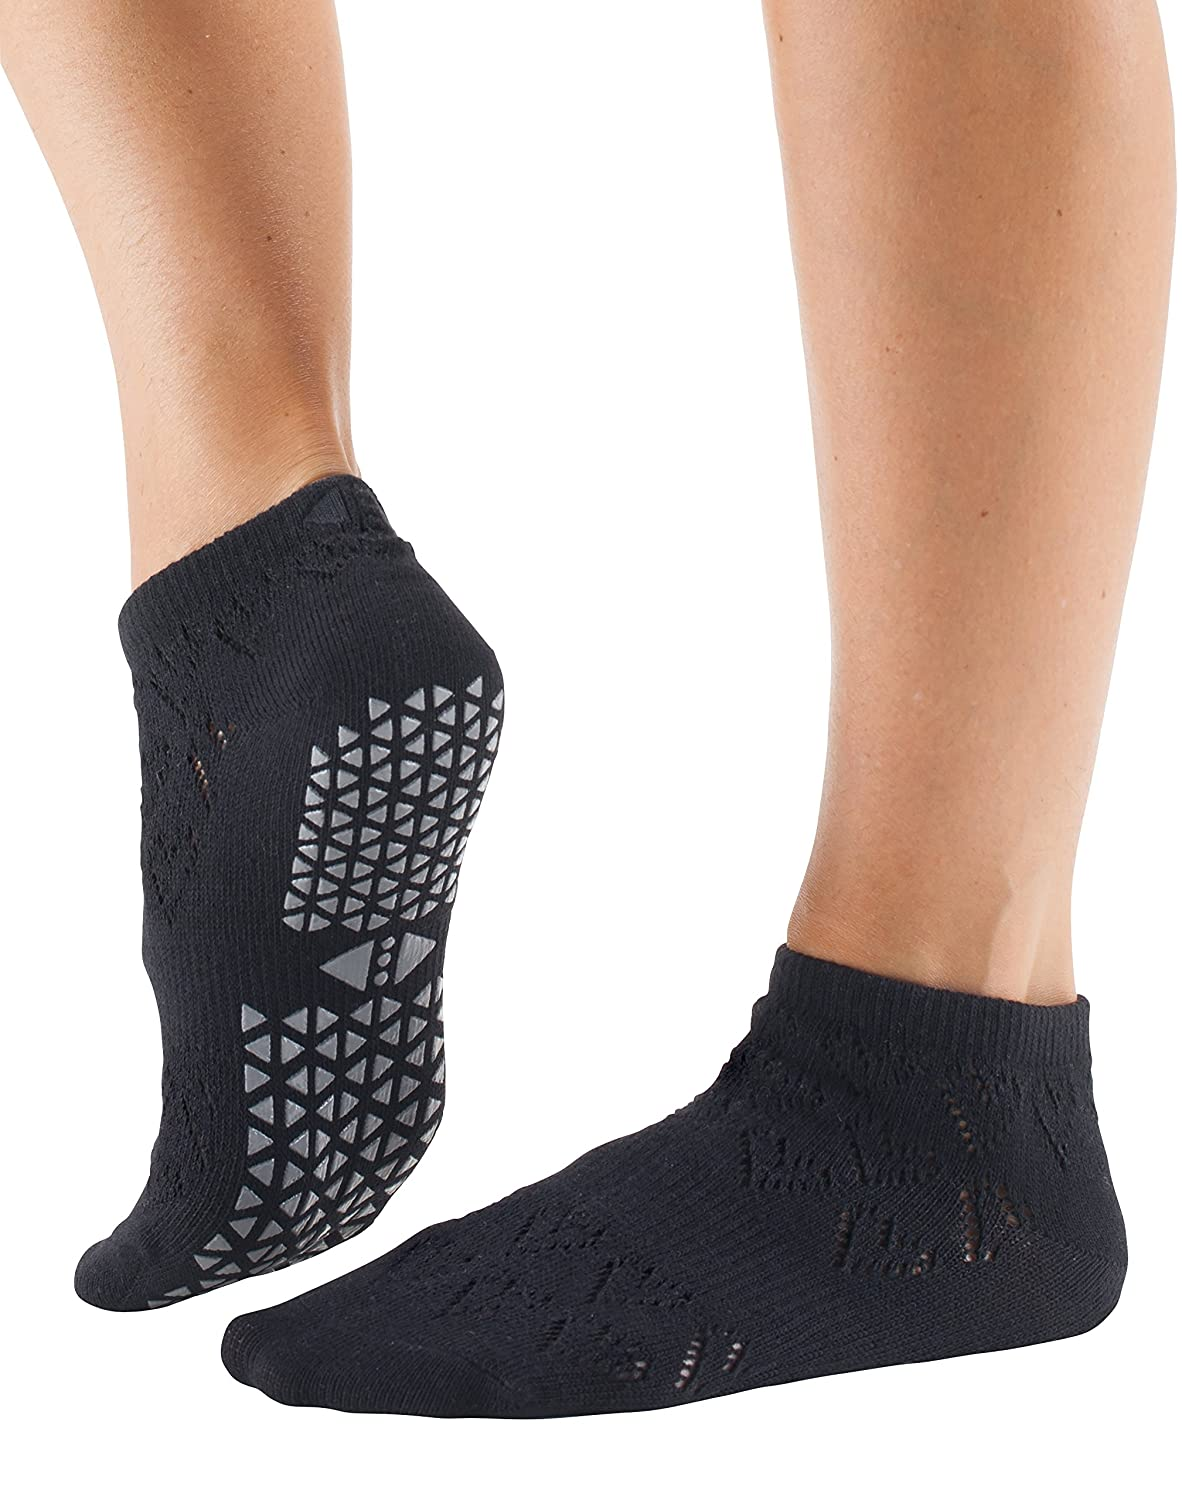 Tavi Noir Women's Lily Low Rise Grip Socks Best for Everyday Wear, Barre, Yoga, Pilates, Dance and Fashion